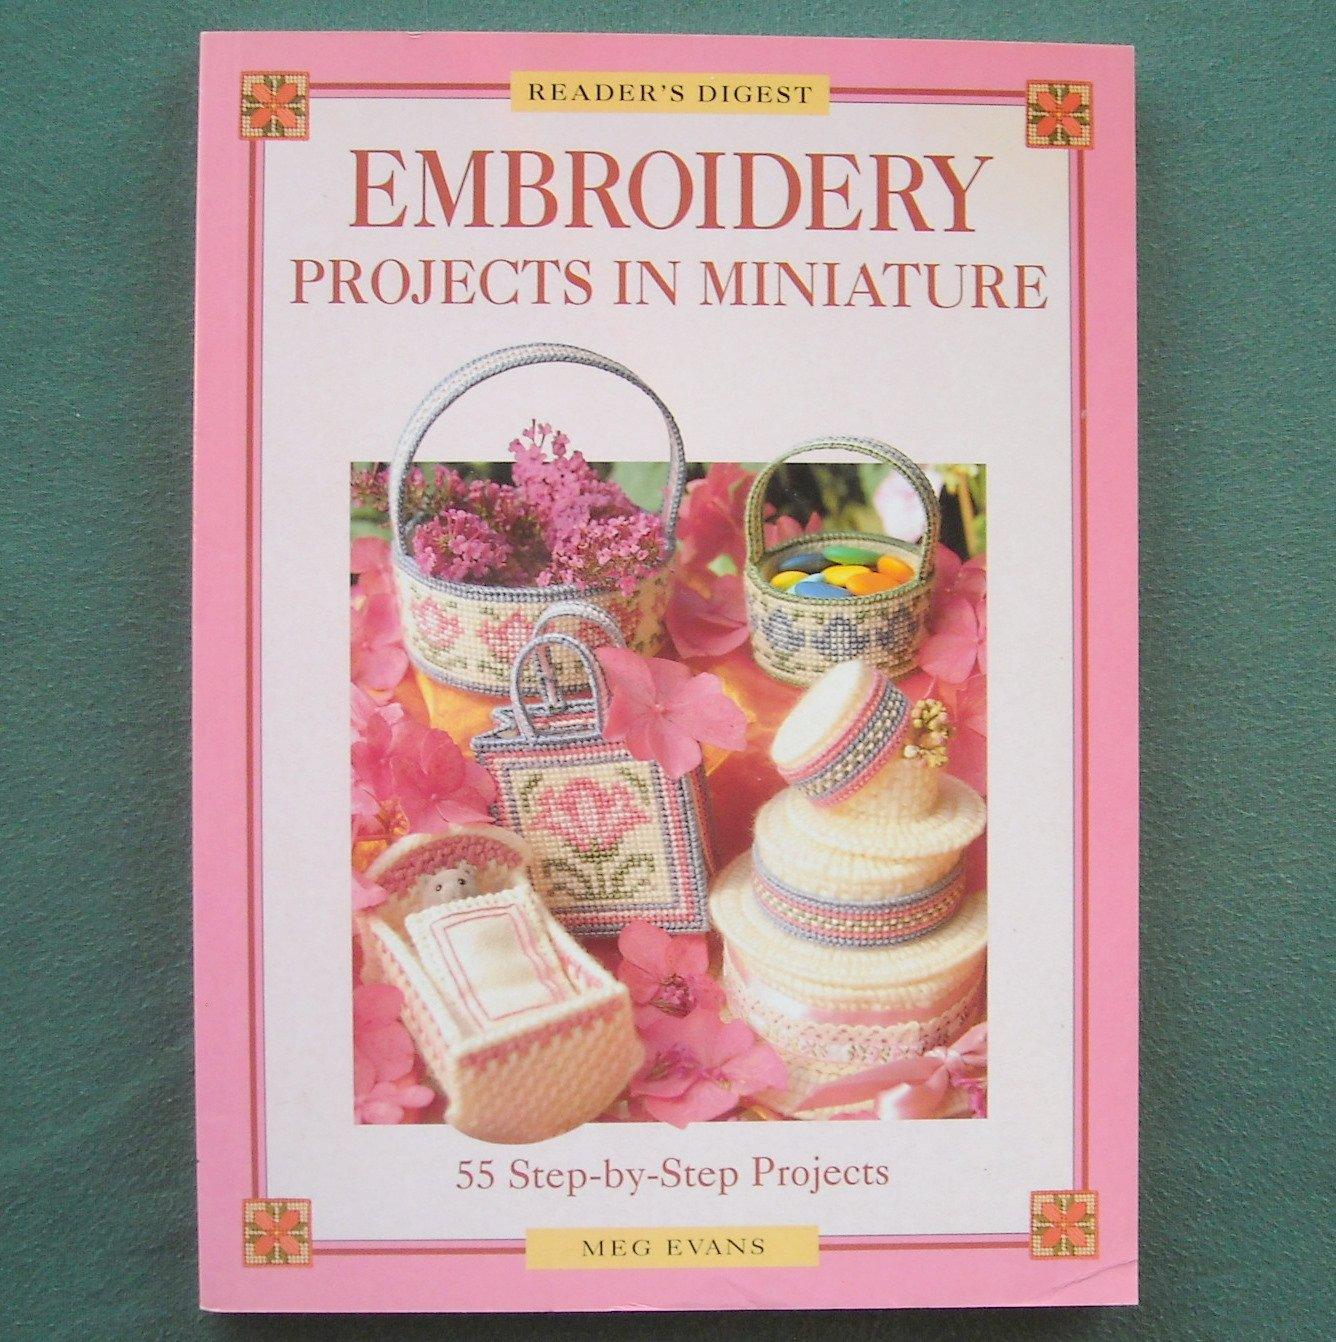 Embroidery projects in miniature by meg evans softcover